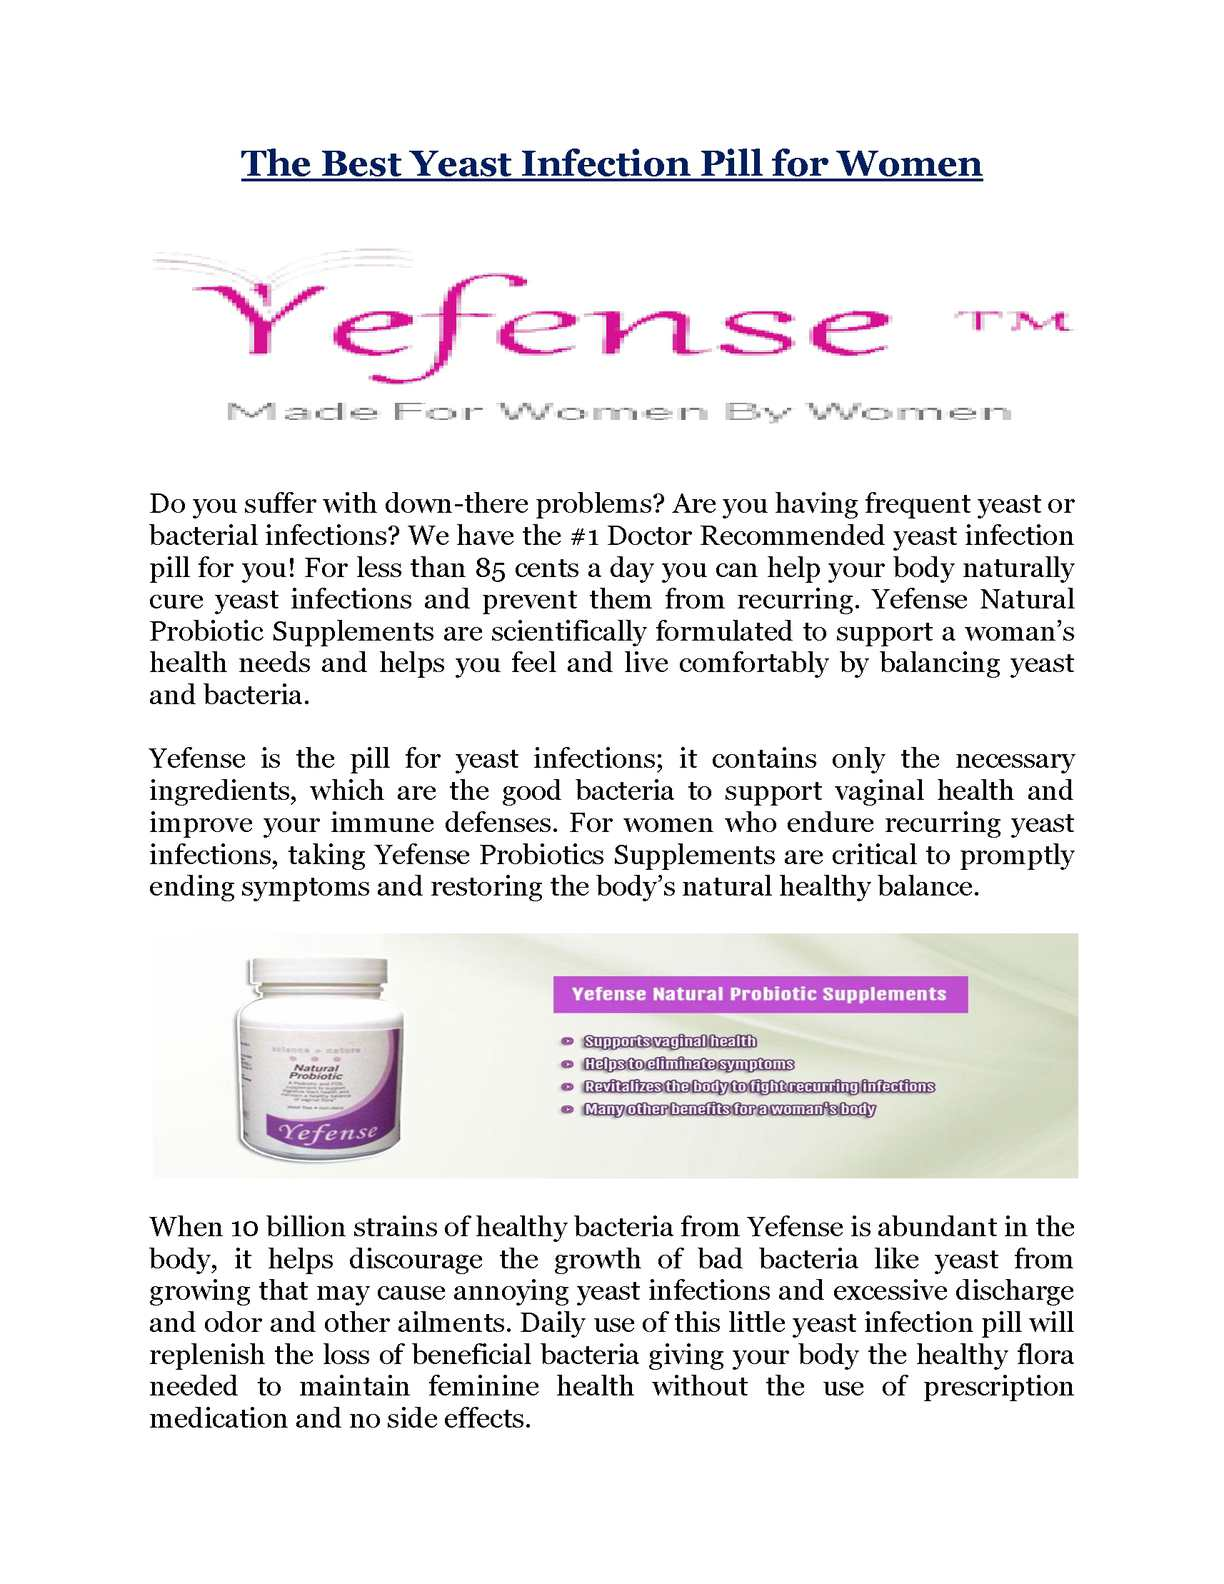 Yeast infection odor